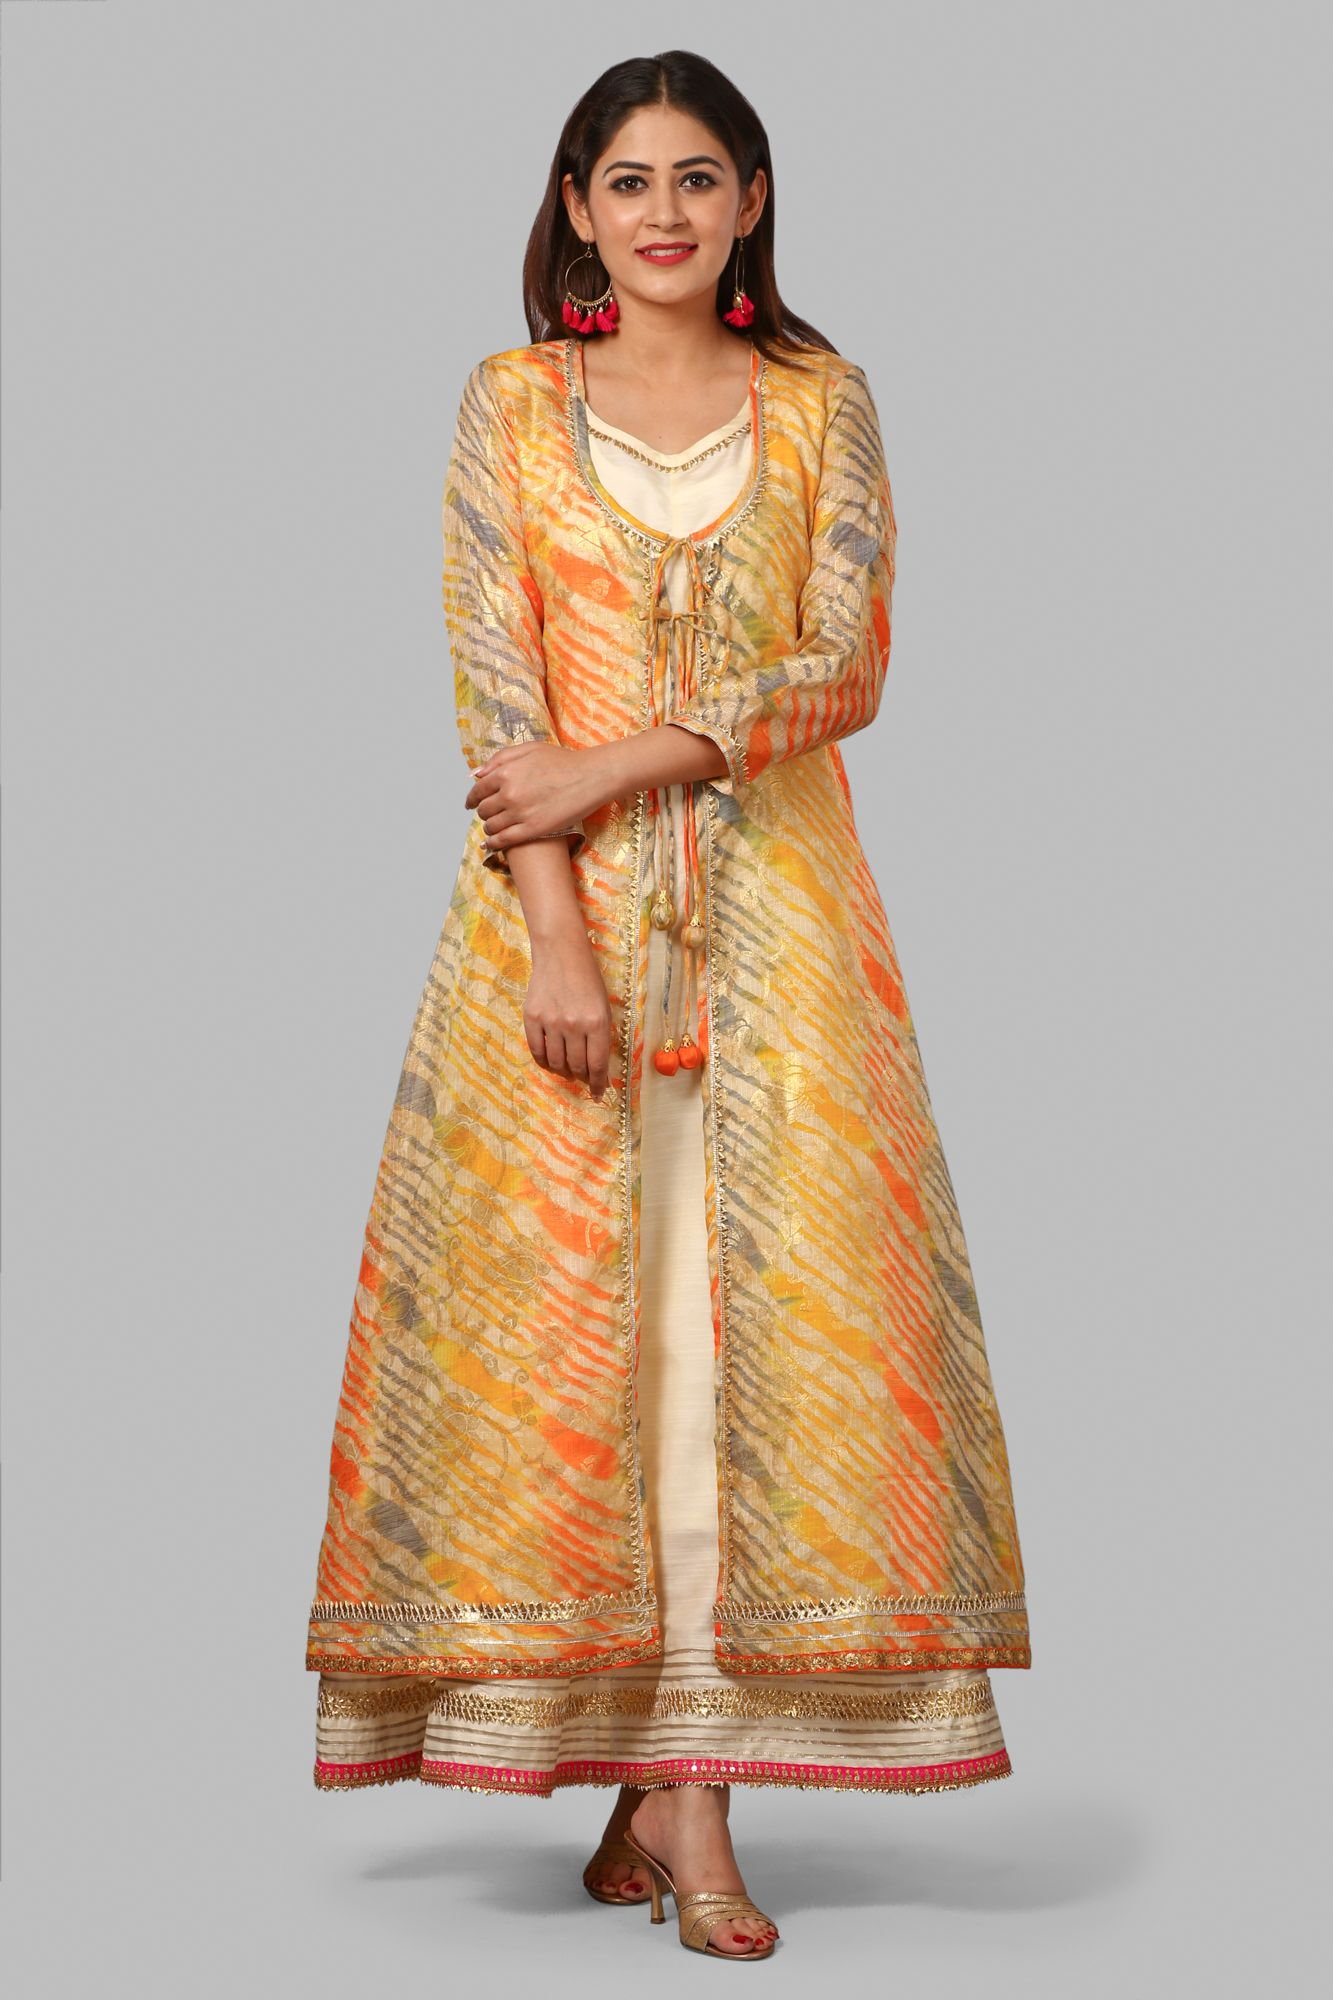 d2c42b7faa Dress up this festive season with something which reflects your  attitude..,something that is YOU....Dress up in this vibrantly different  kalidaar ...